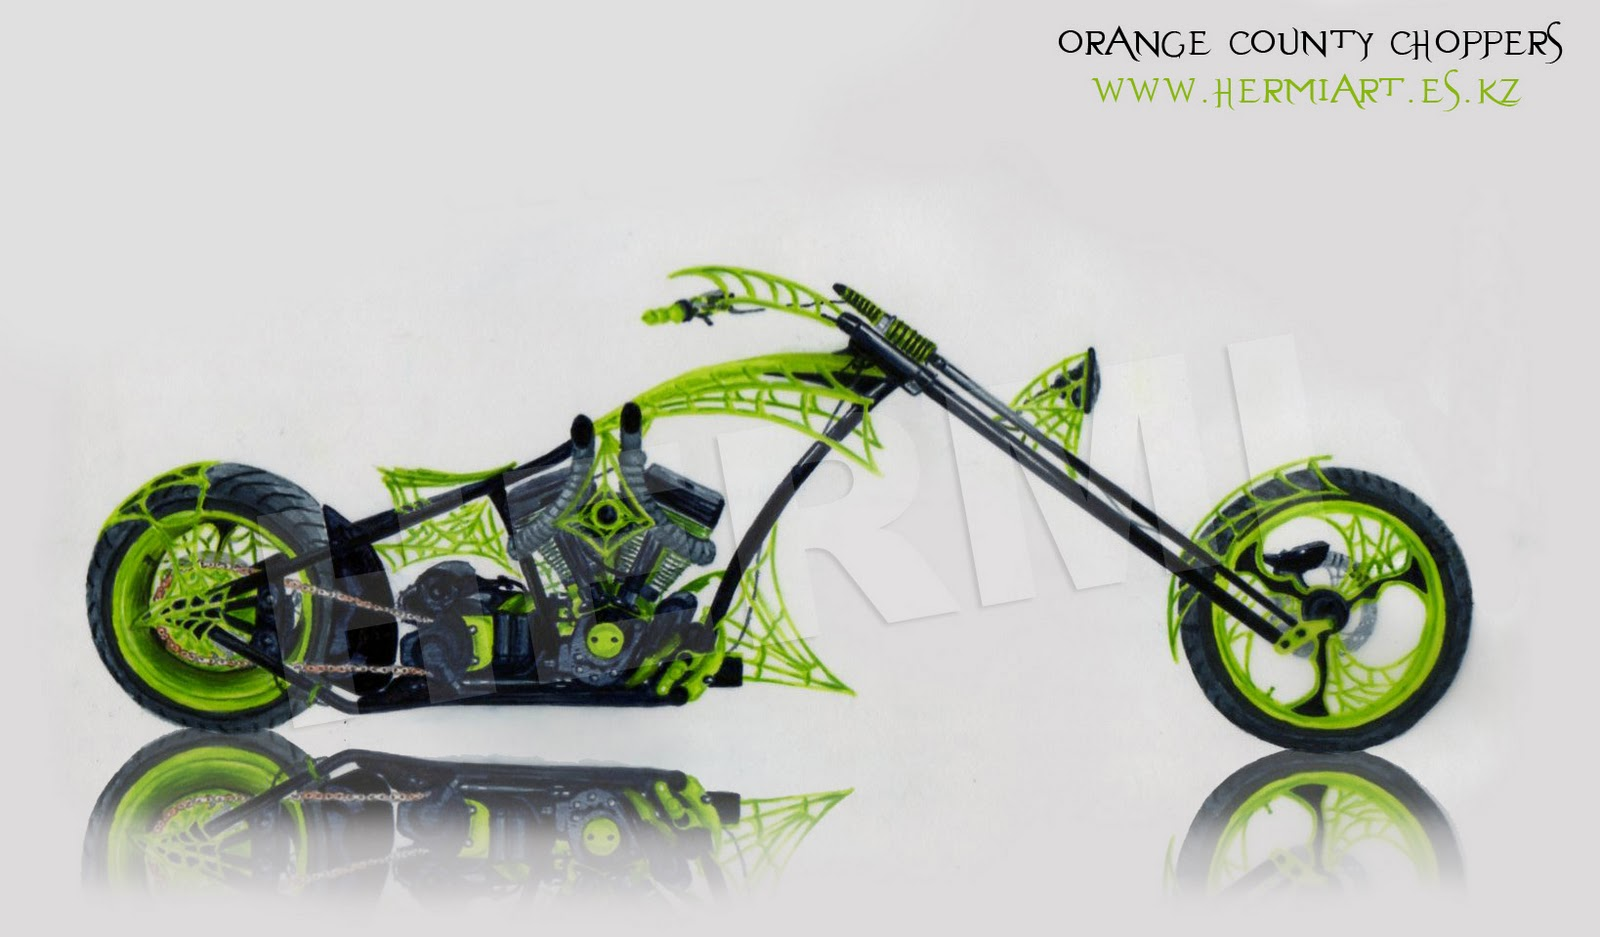 http://4.bp.blogspot.com/-ozu8vASo_V4/TWWziT2T5XI/AAAAAAAAAAQ/vQsxdnal5jw/s1600/orange_county_choppers_drawing_by_hermihrz.jpg